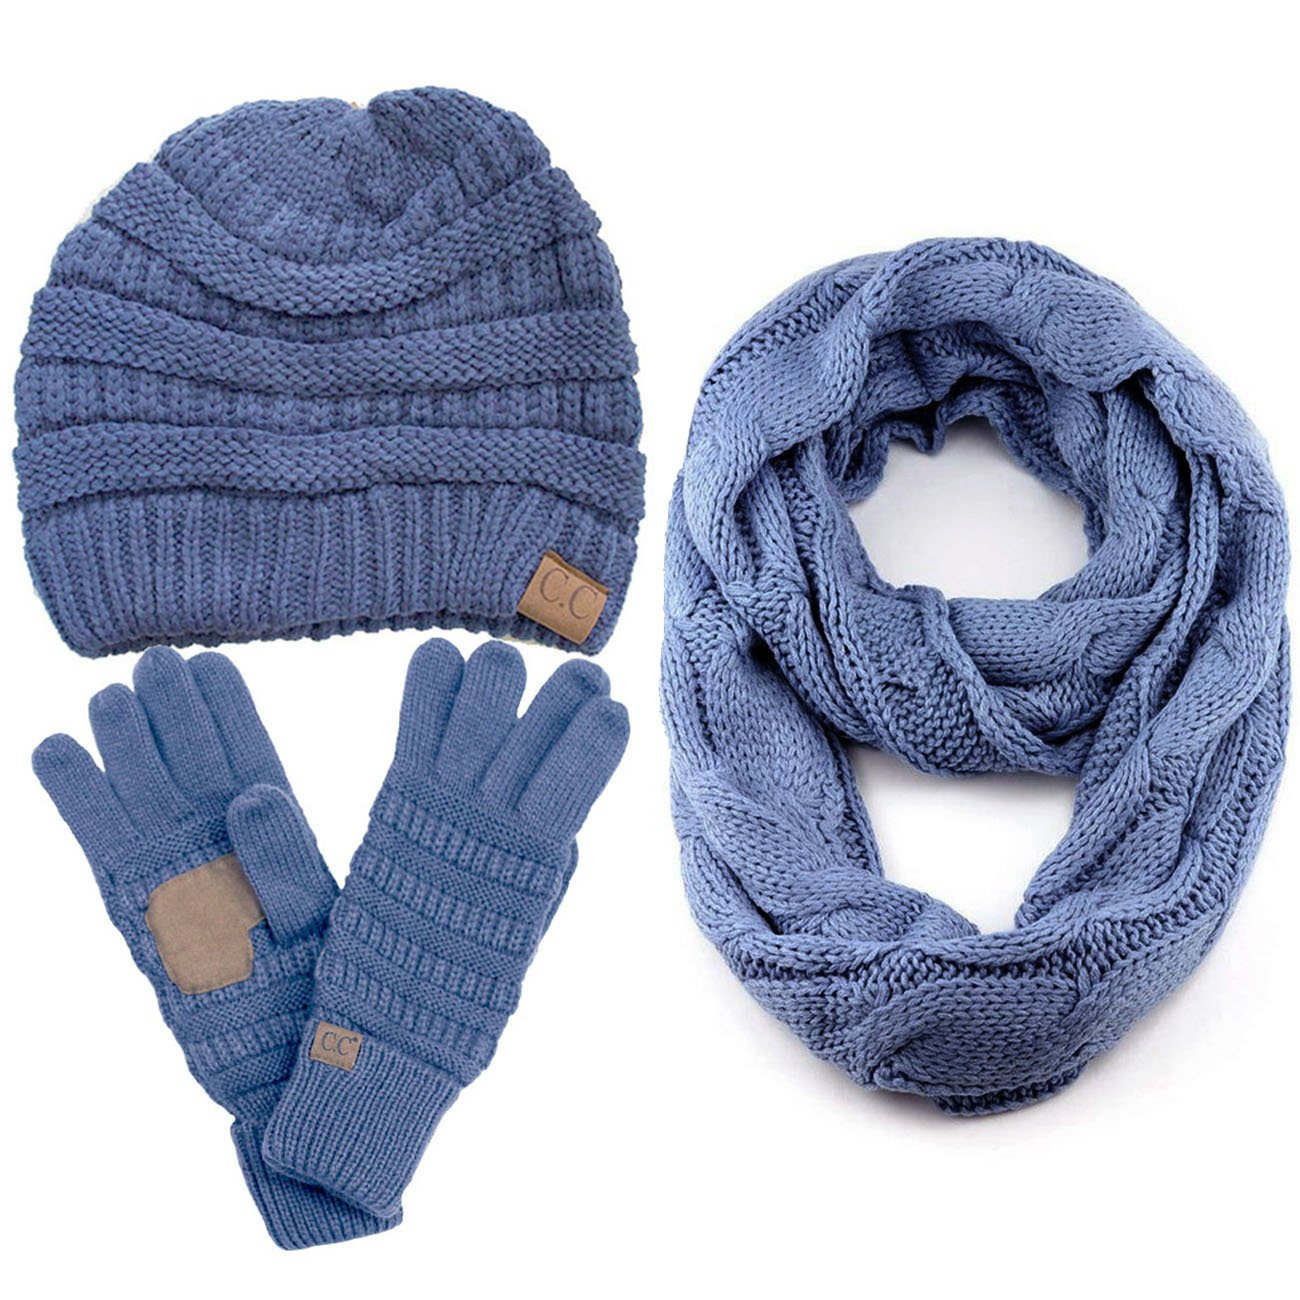 ScarvesMe CC 3pc Set Trendy Warm Chunky Soft Stretch Cable Knit Beanie, Scarves and Gloves Set